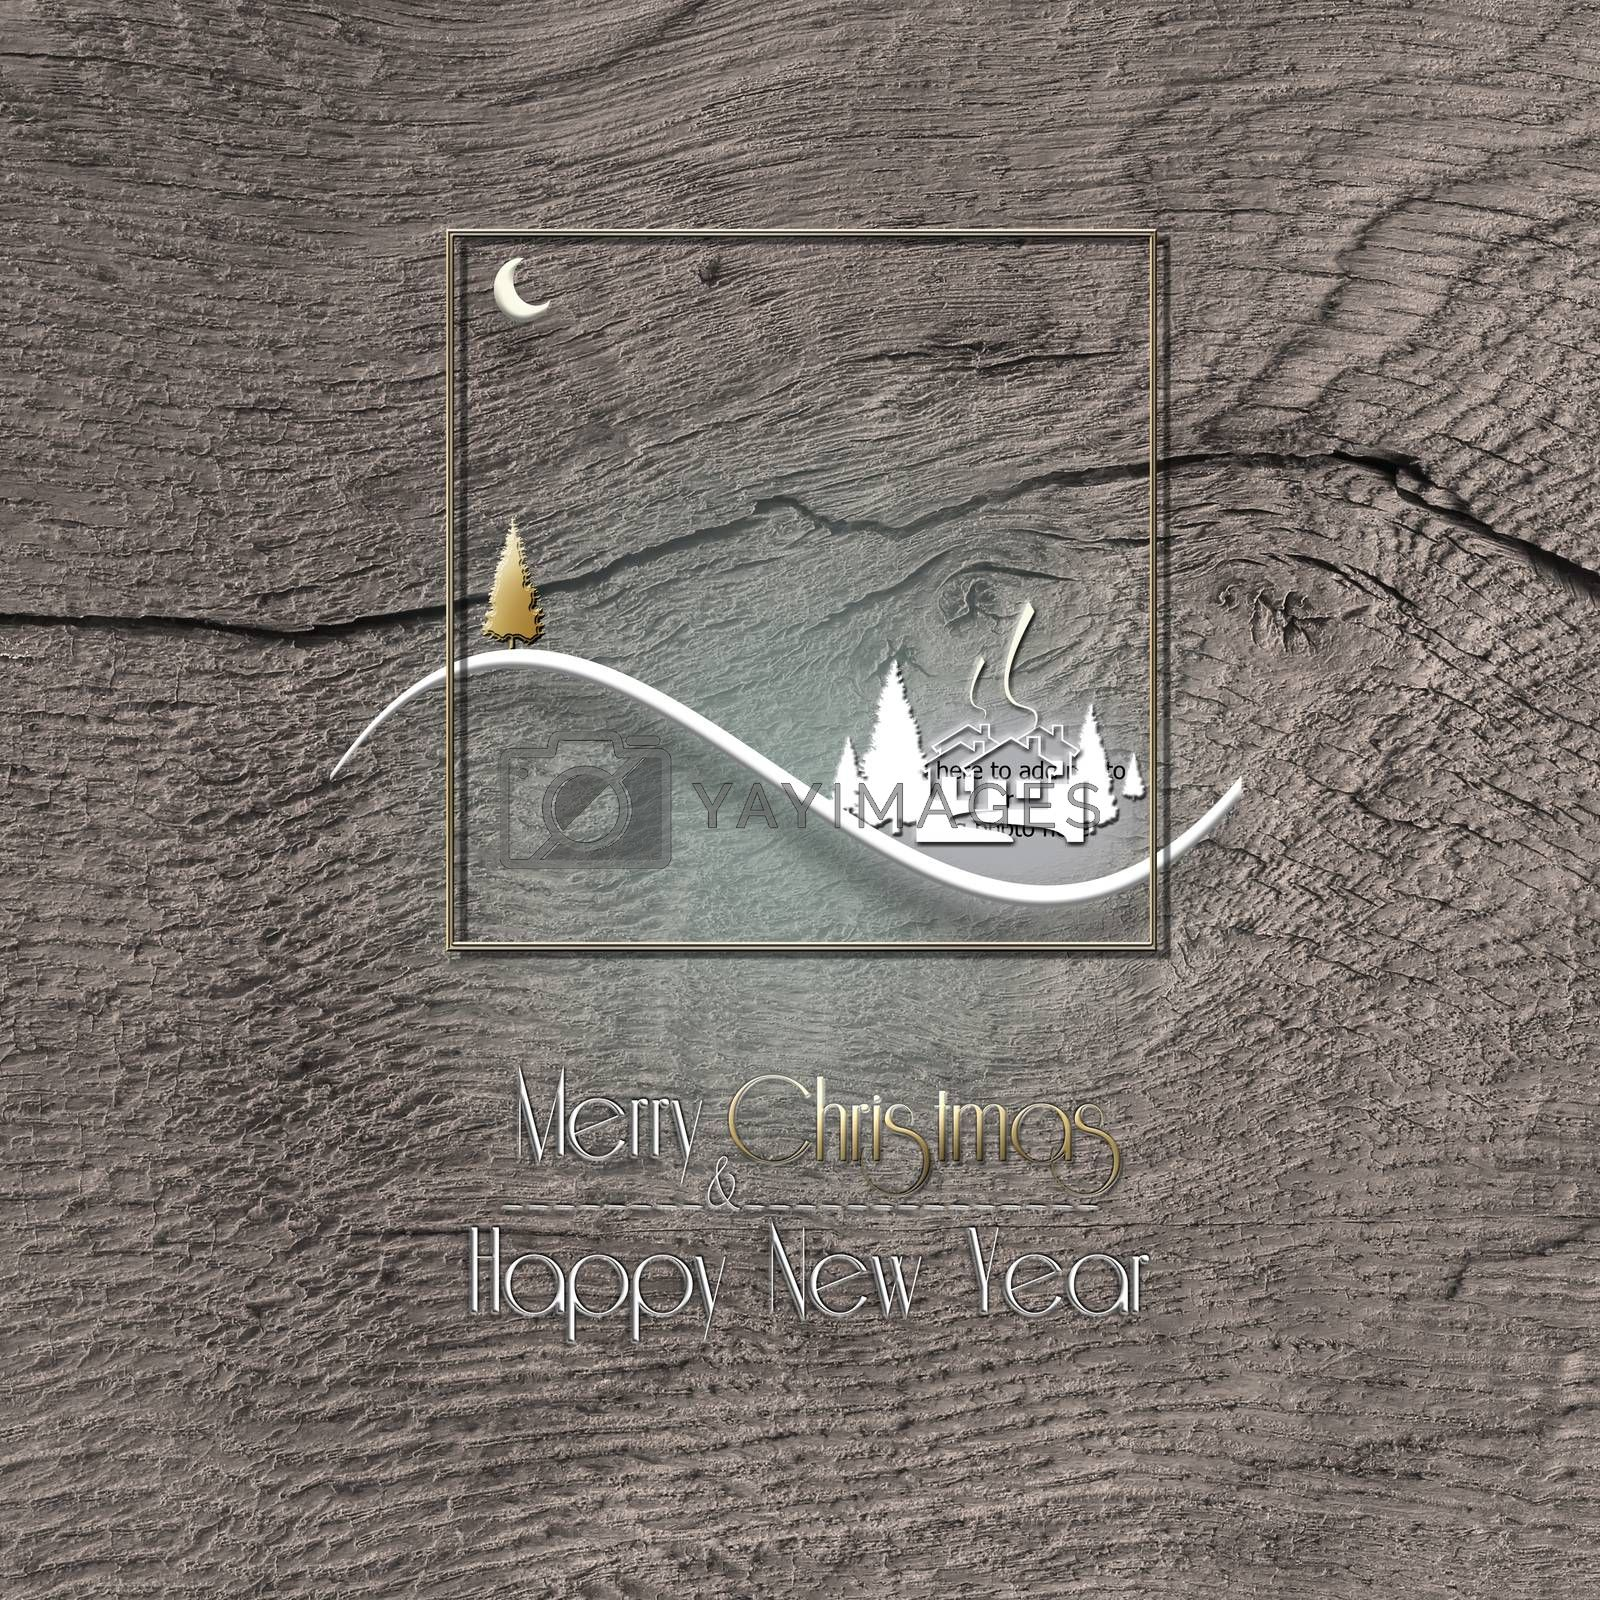 Minimalist Christmas 2021 New Year winter landscape on old wood texture background. Text Merry Christmas Happy New year. Design, poster. 3D Illustration